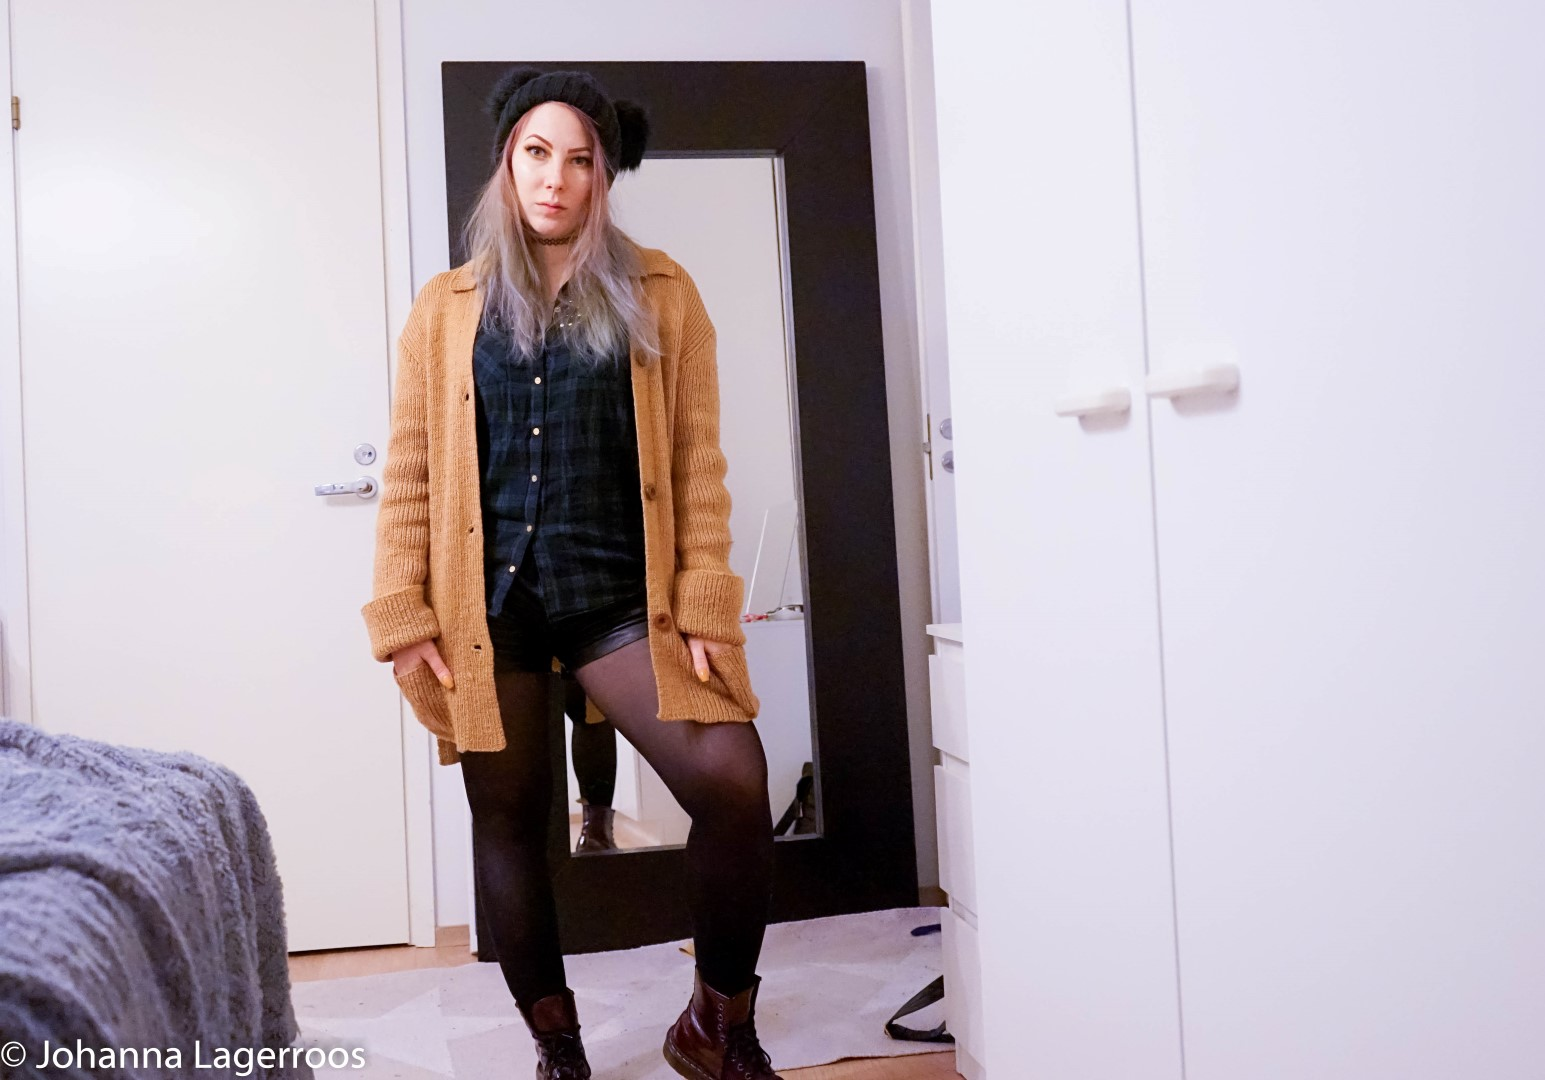 rock chic winter outfit